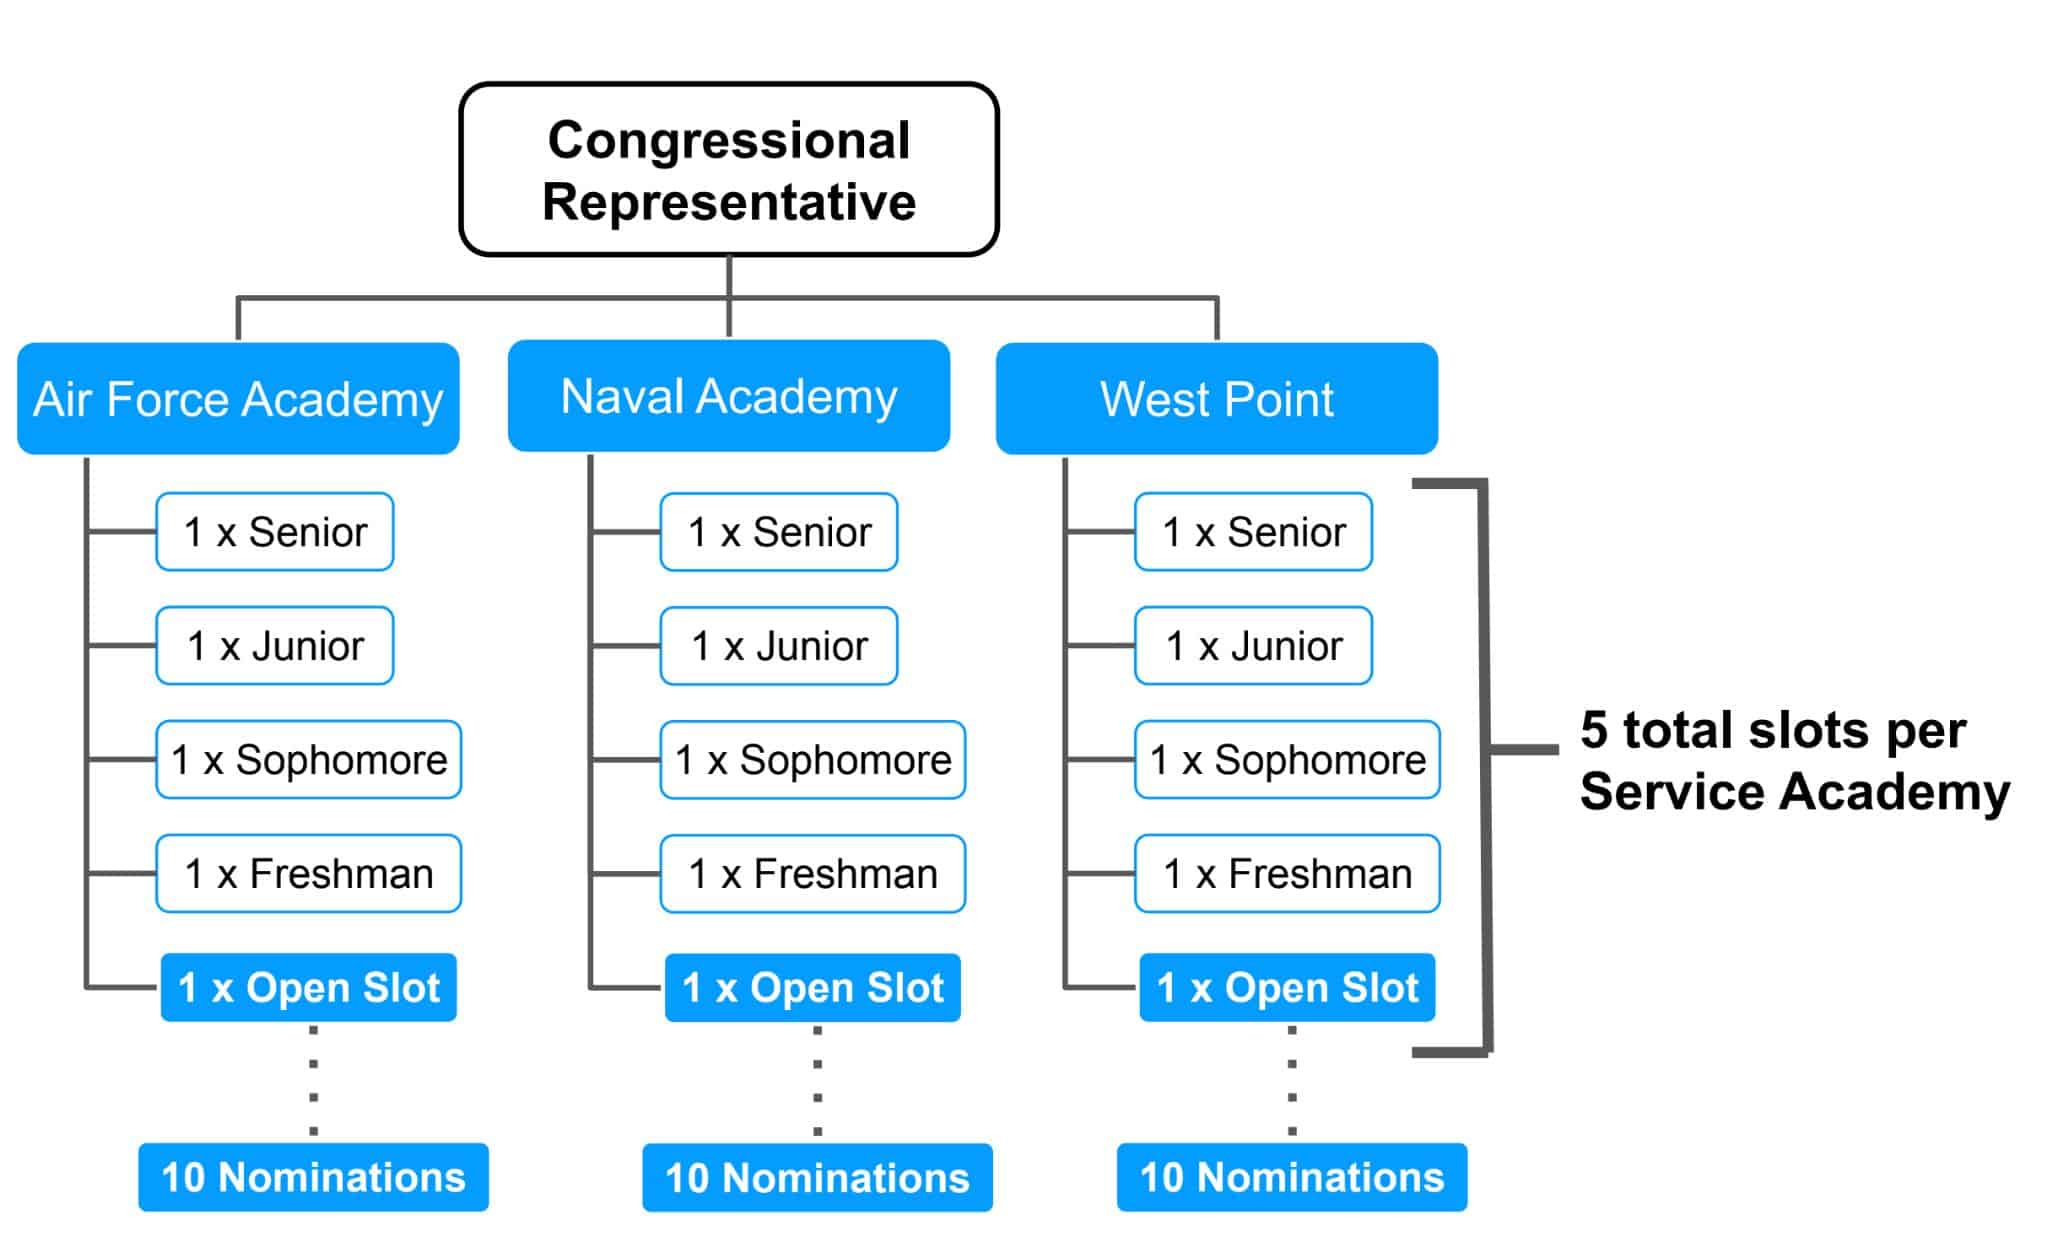 flow chart showing how the congressional nomination process works for service academies